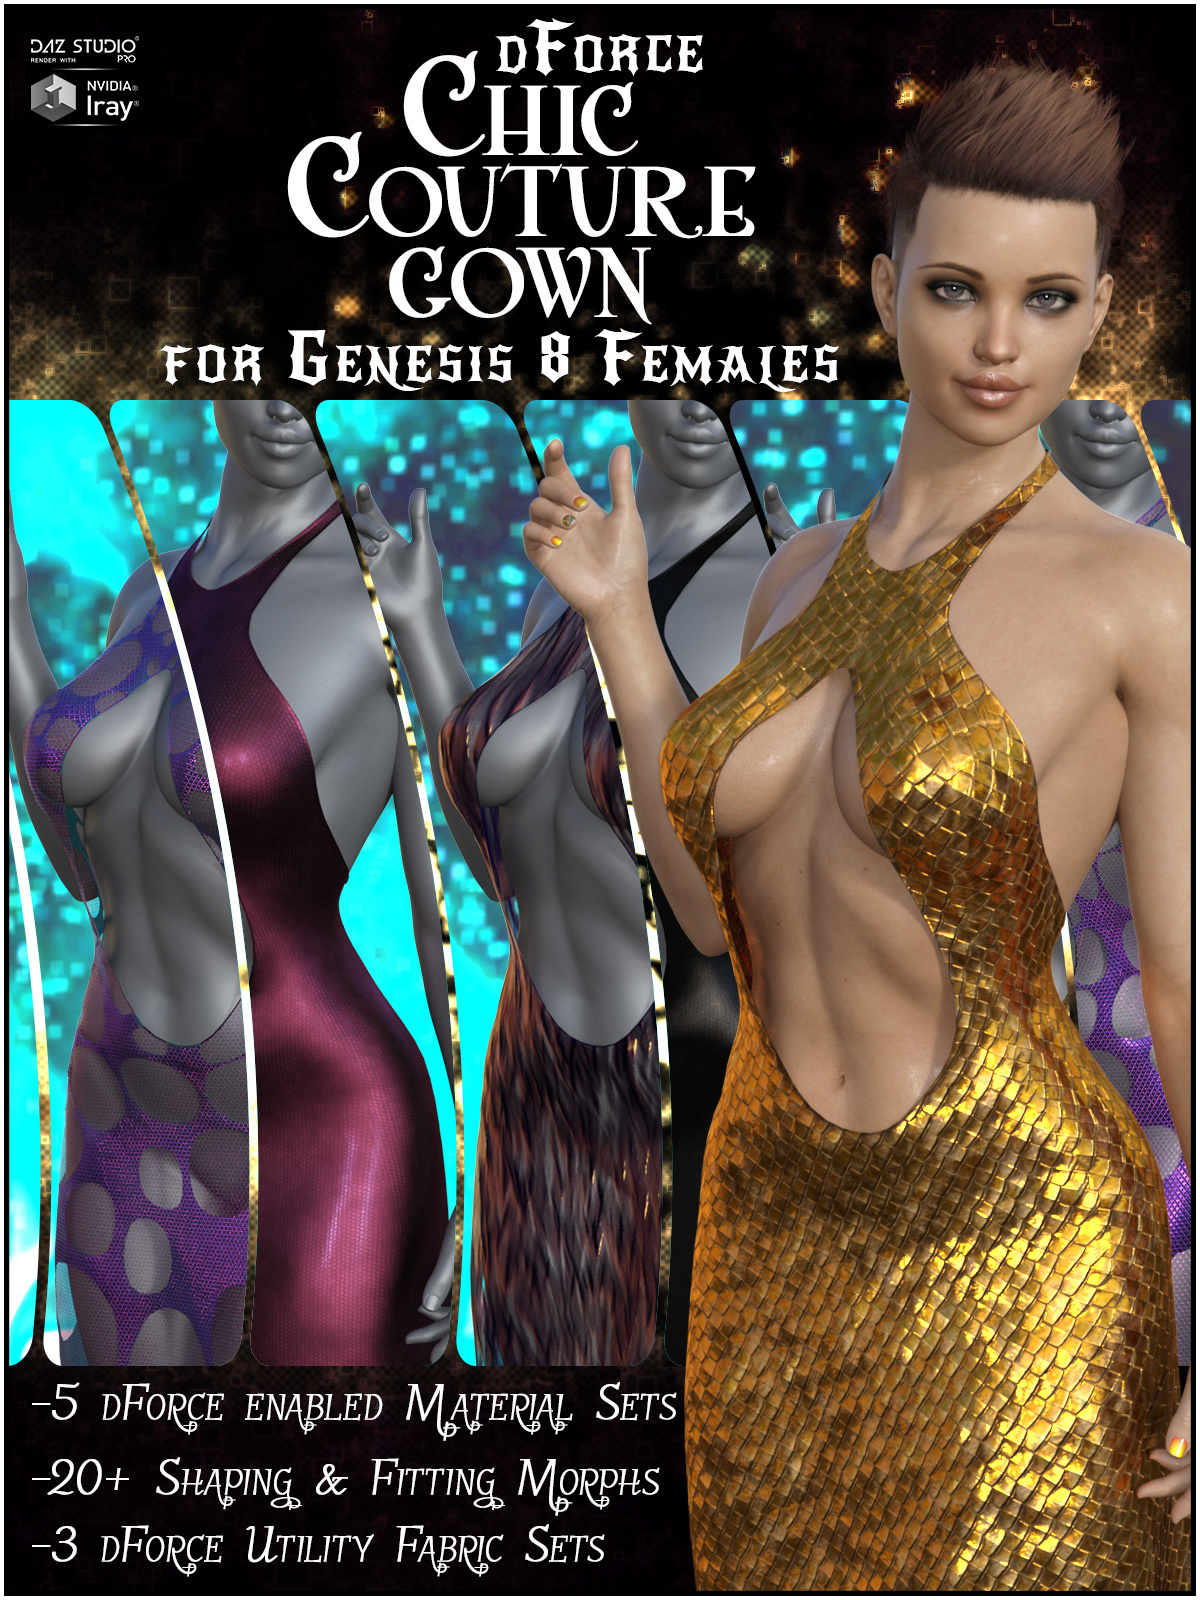 dForce Chic Couture Gown for Genesis 8 Females by SWTrium